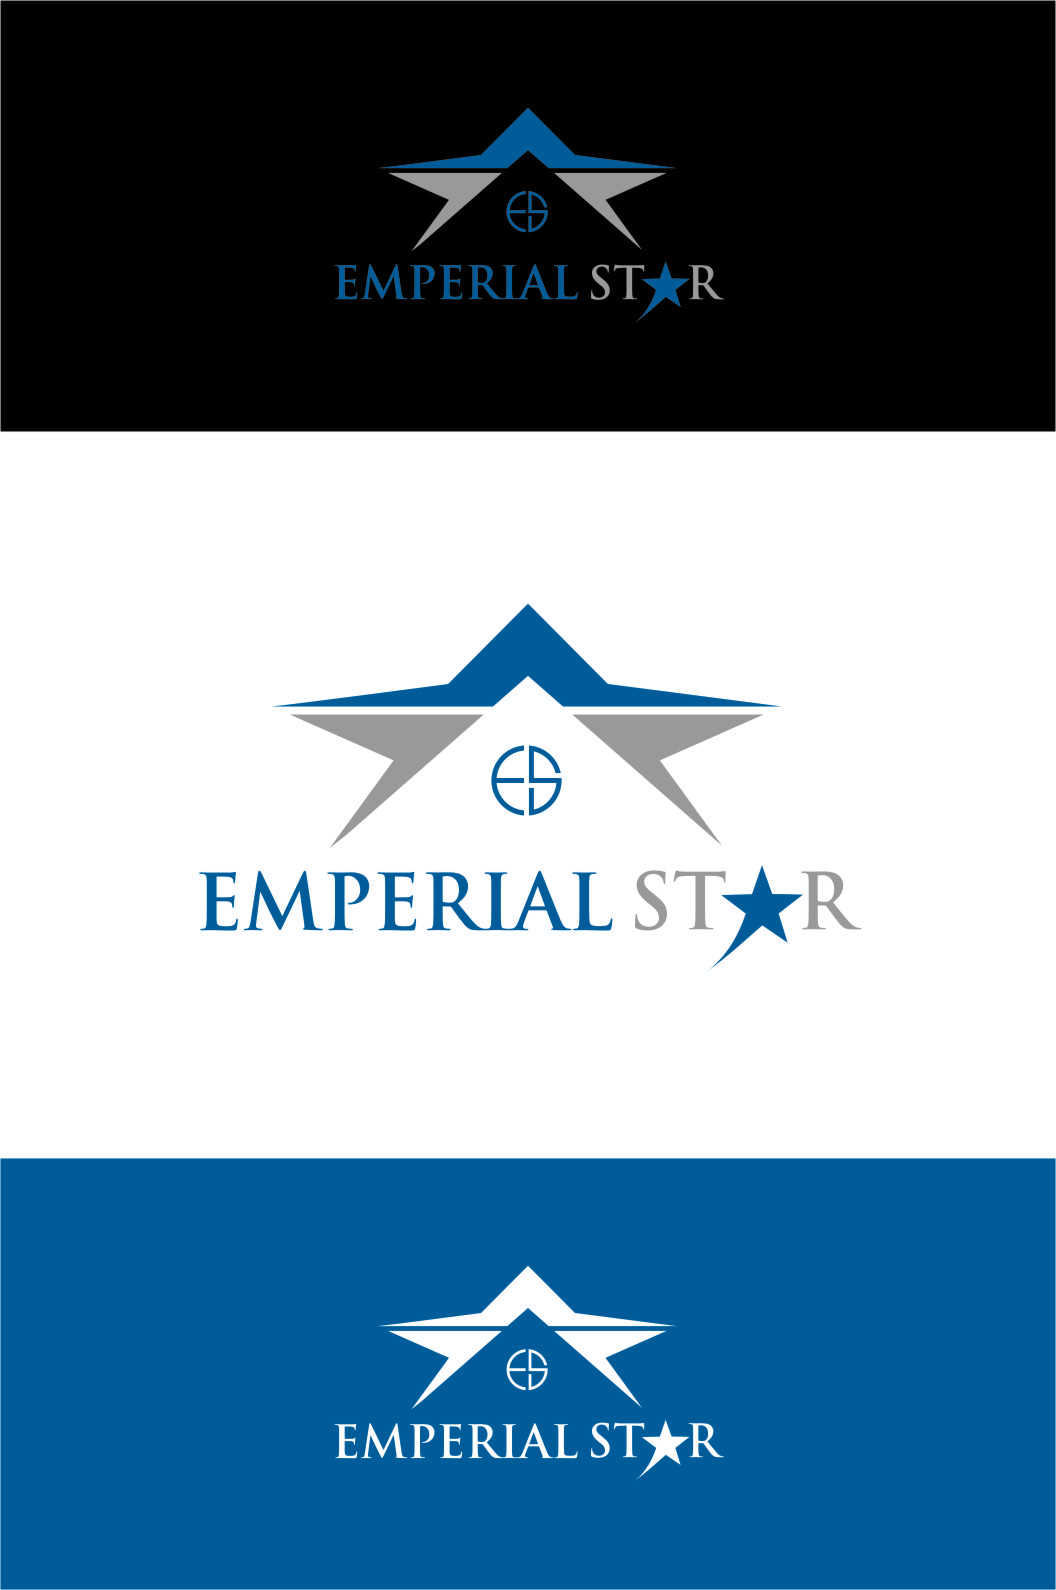 Logo Design by Ngepet_art - Entry No. 146 in the Logo Design Contest Emperial Star Logo Design.